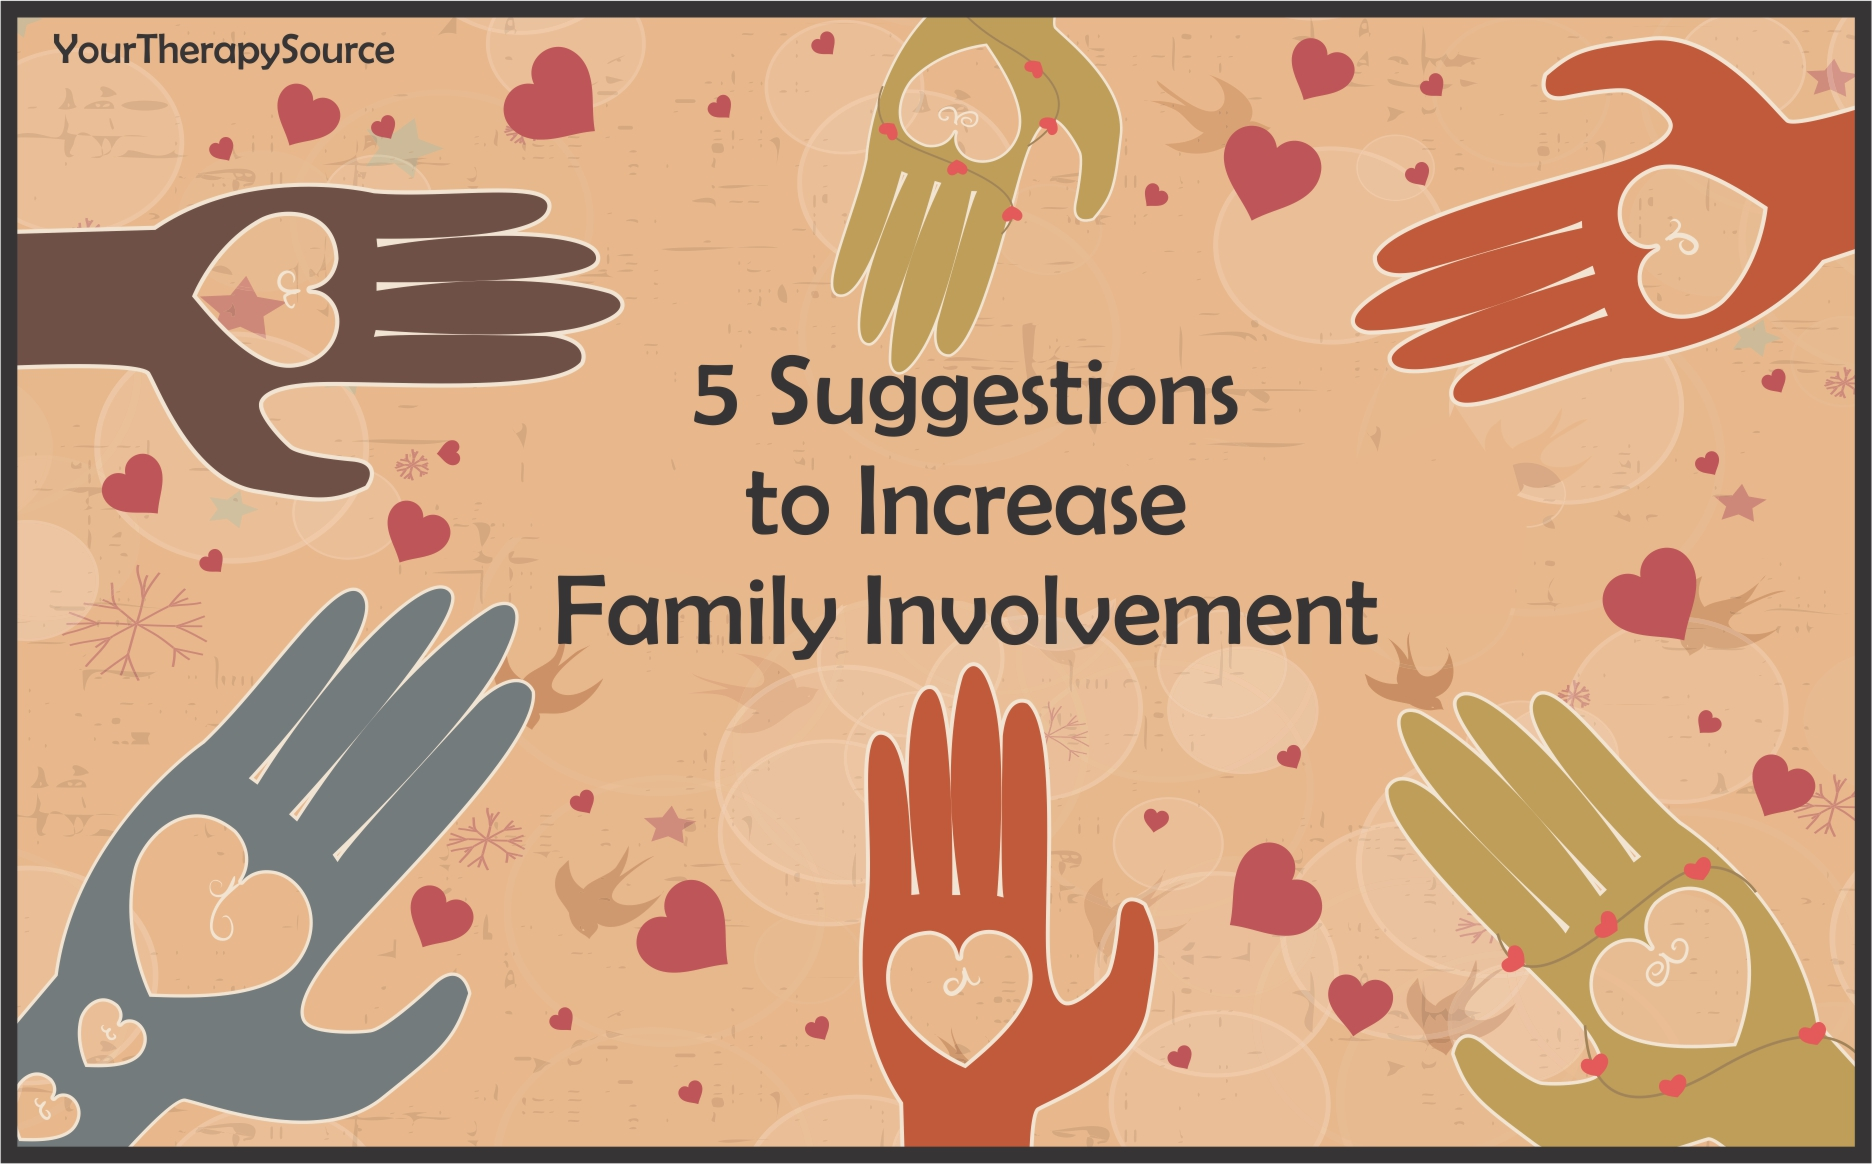 5 Tips to Increase Family Involvement